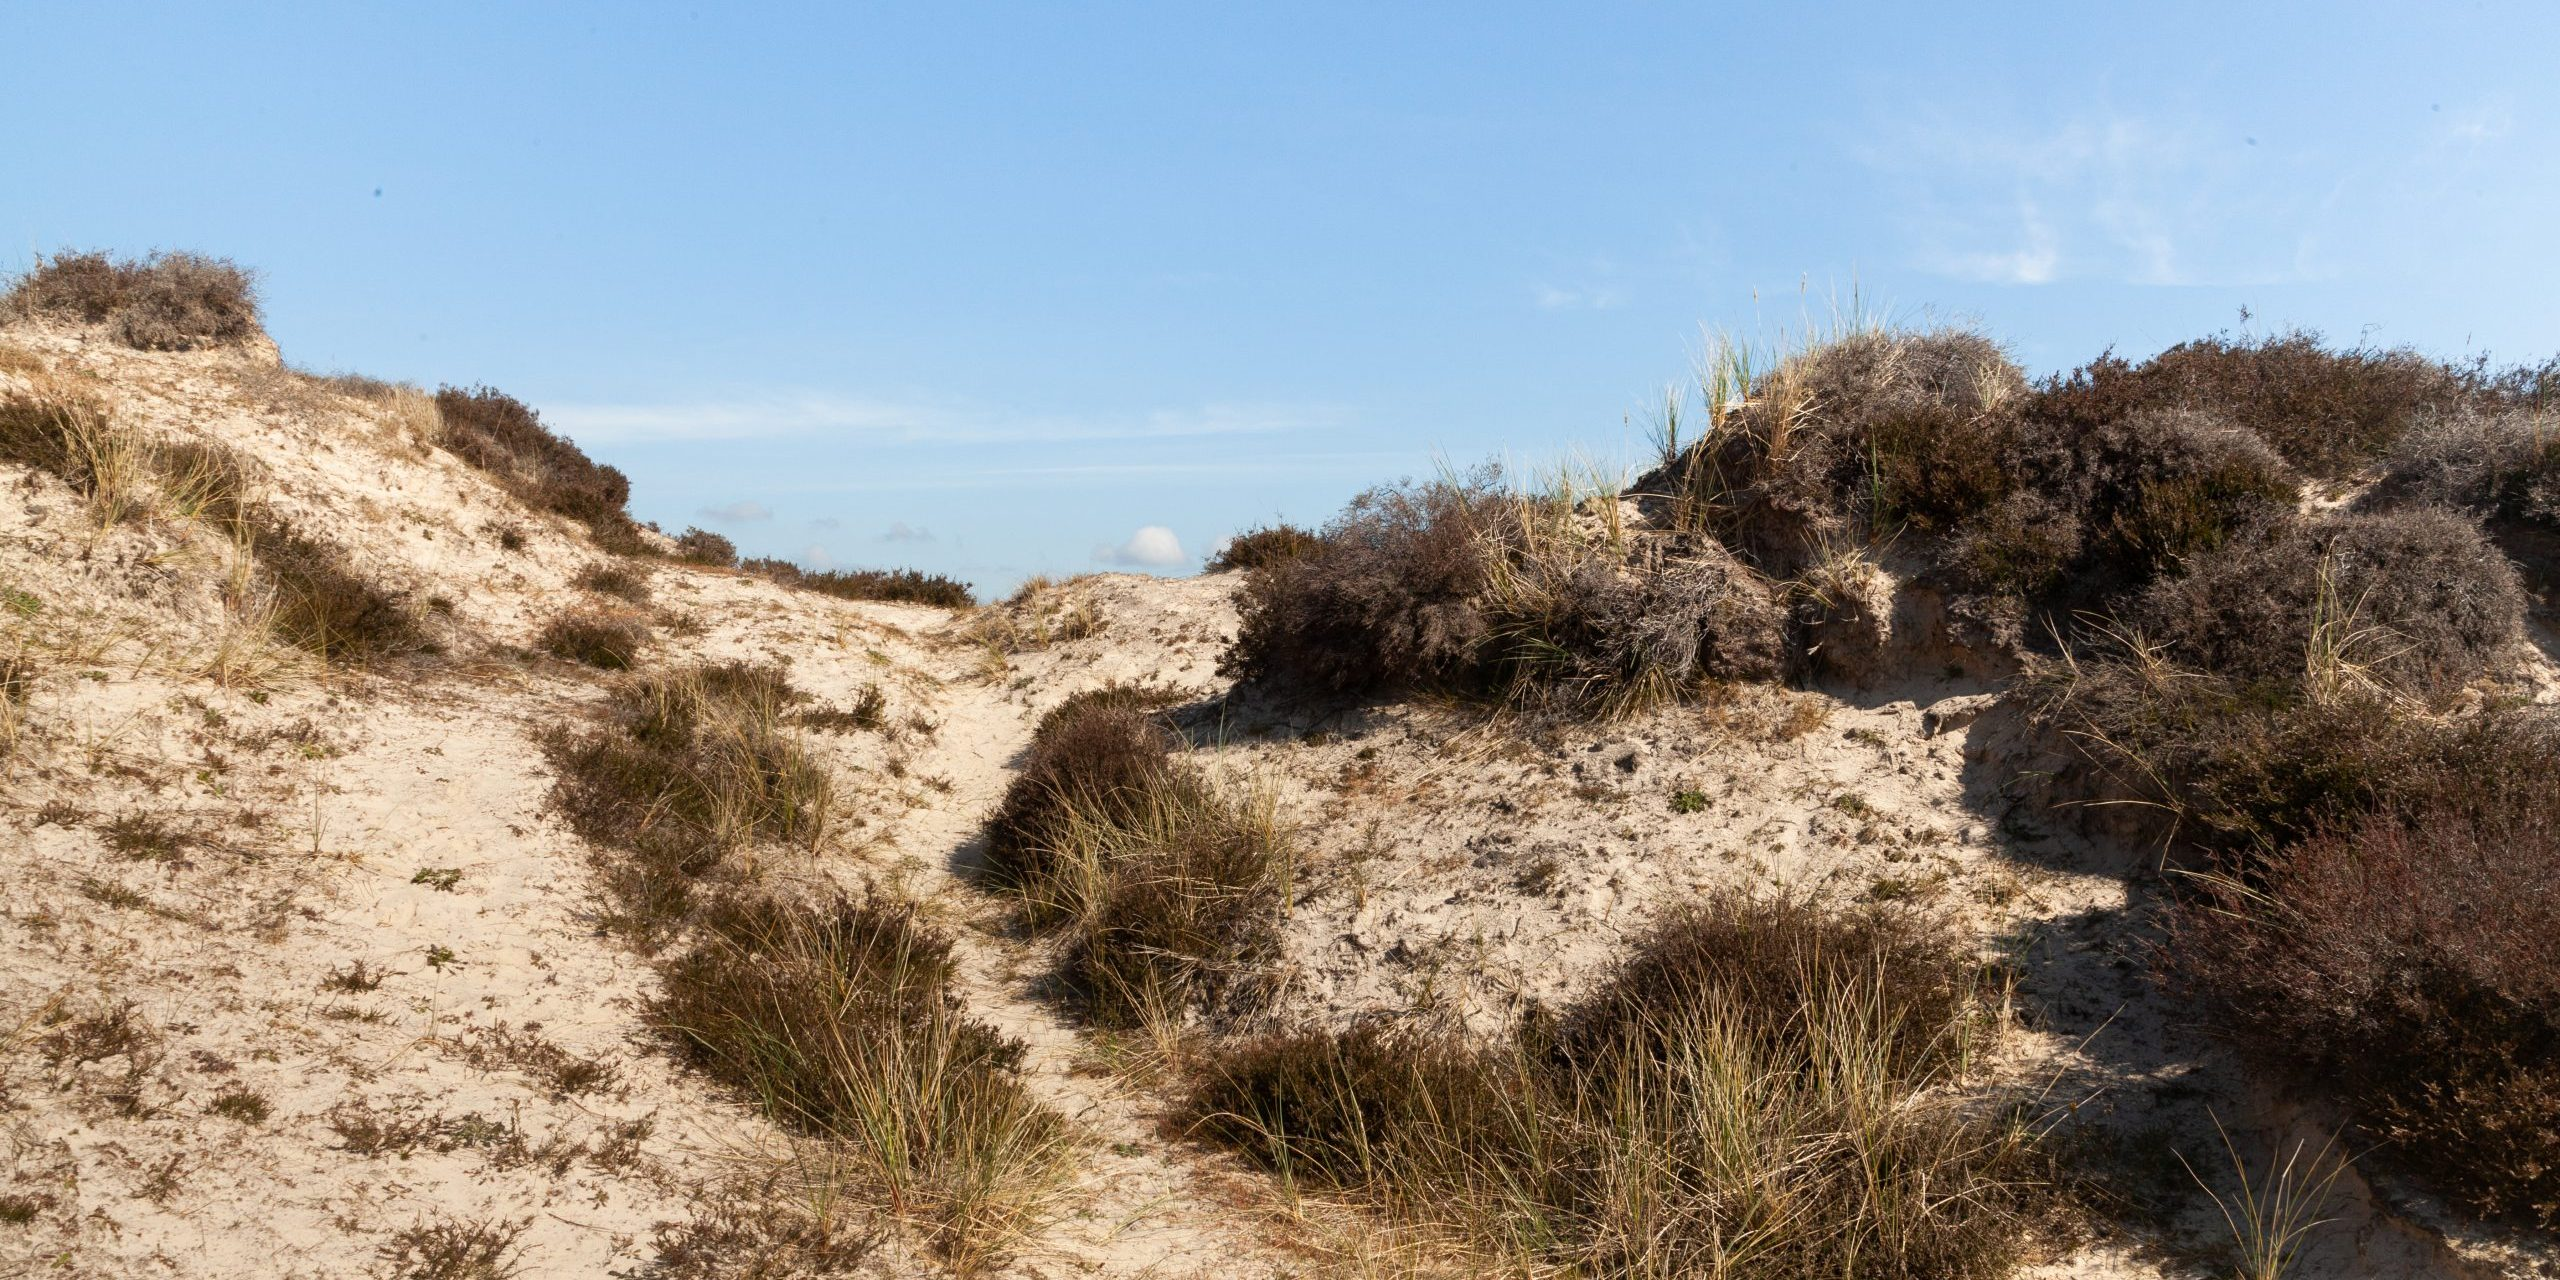 Pathways visible in the dunes at studland bay